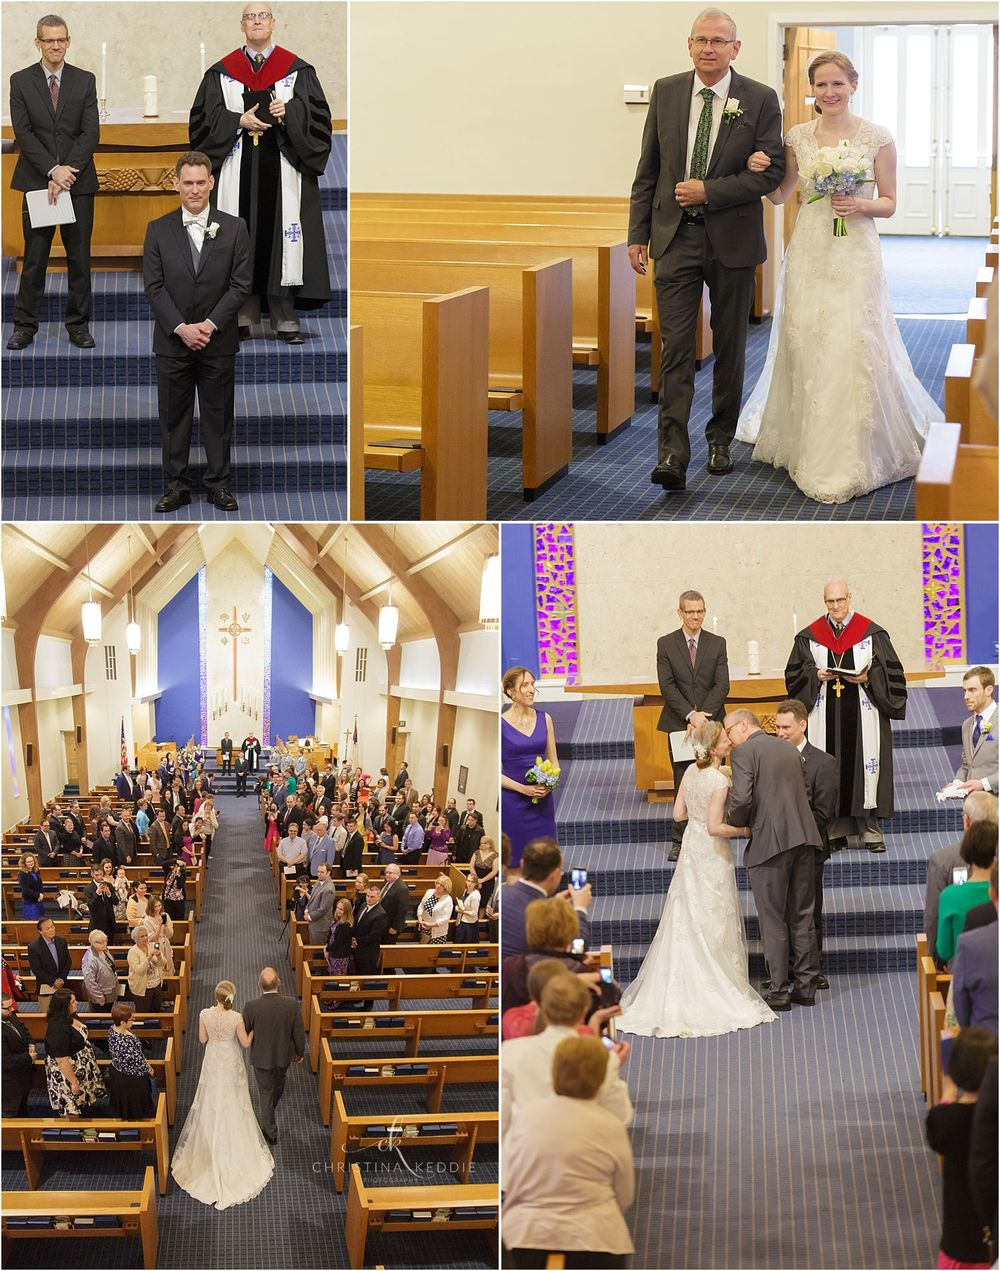 Bride processing into sanctuary with father | Christina Keddie Photography | Cherry Hill NJ wedding photographer